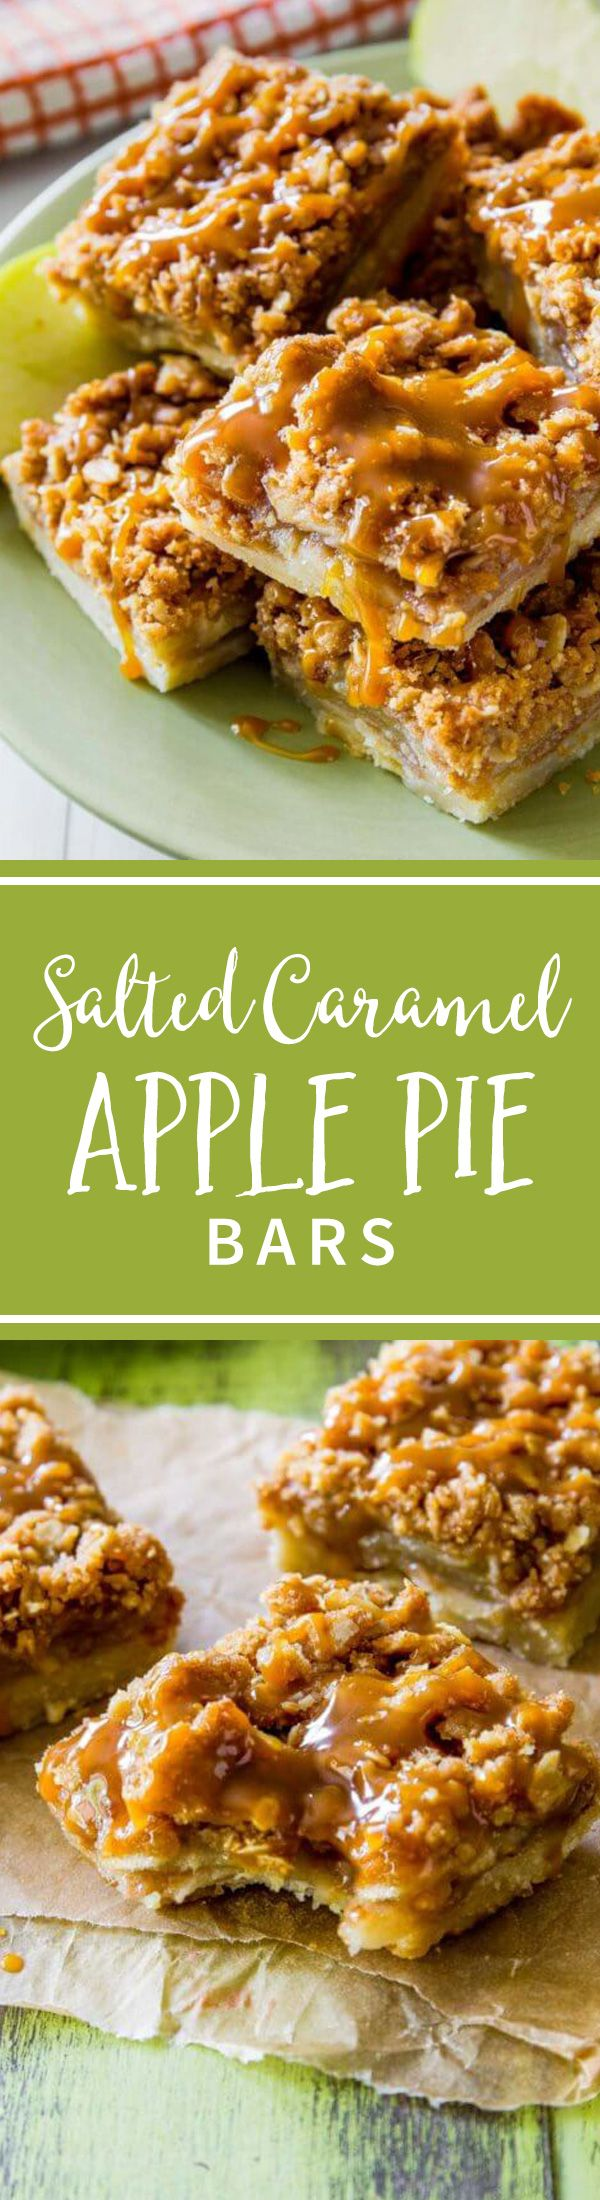 These Salted Caramel Apple Pie Bars are mind-blowing delicious! So much easier to make than an entire apple pie, too. Recipe on sallysbakingaddiction.com